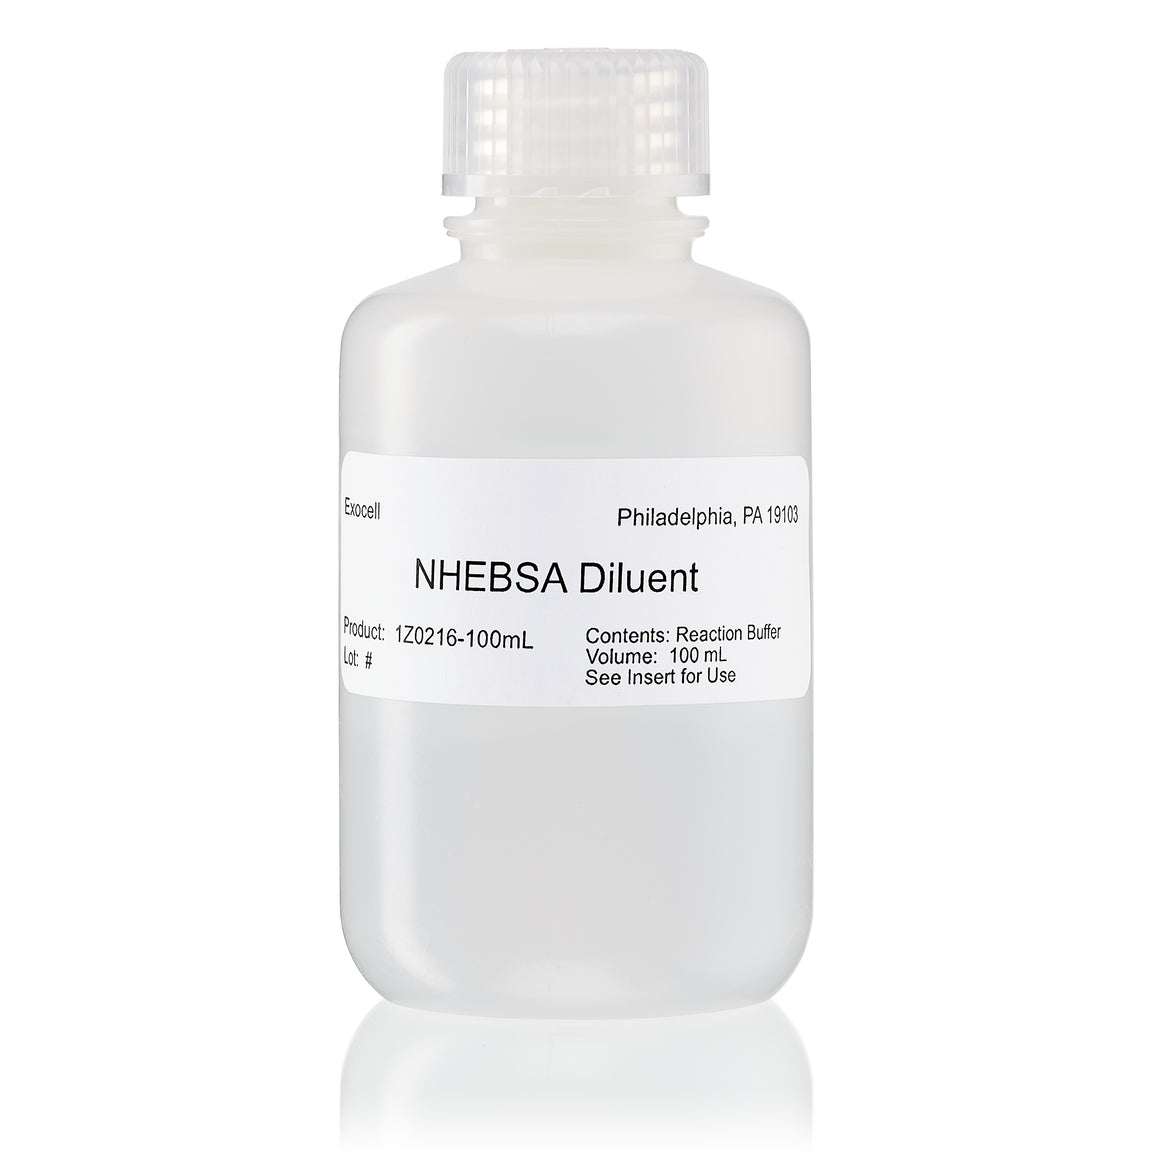 NHE-BSA Diluent            100 mL